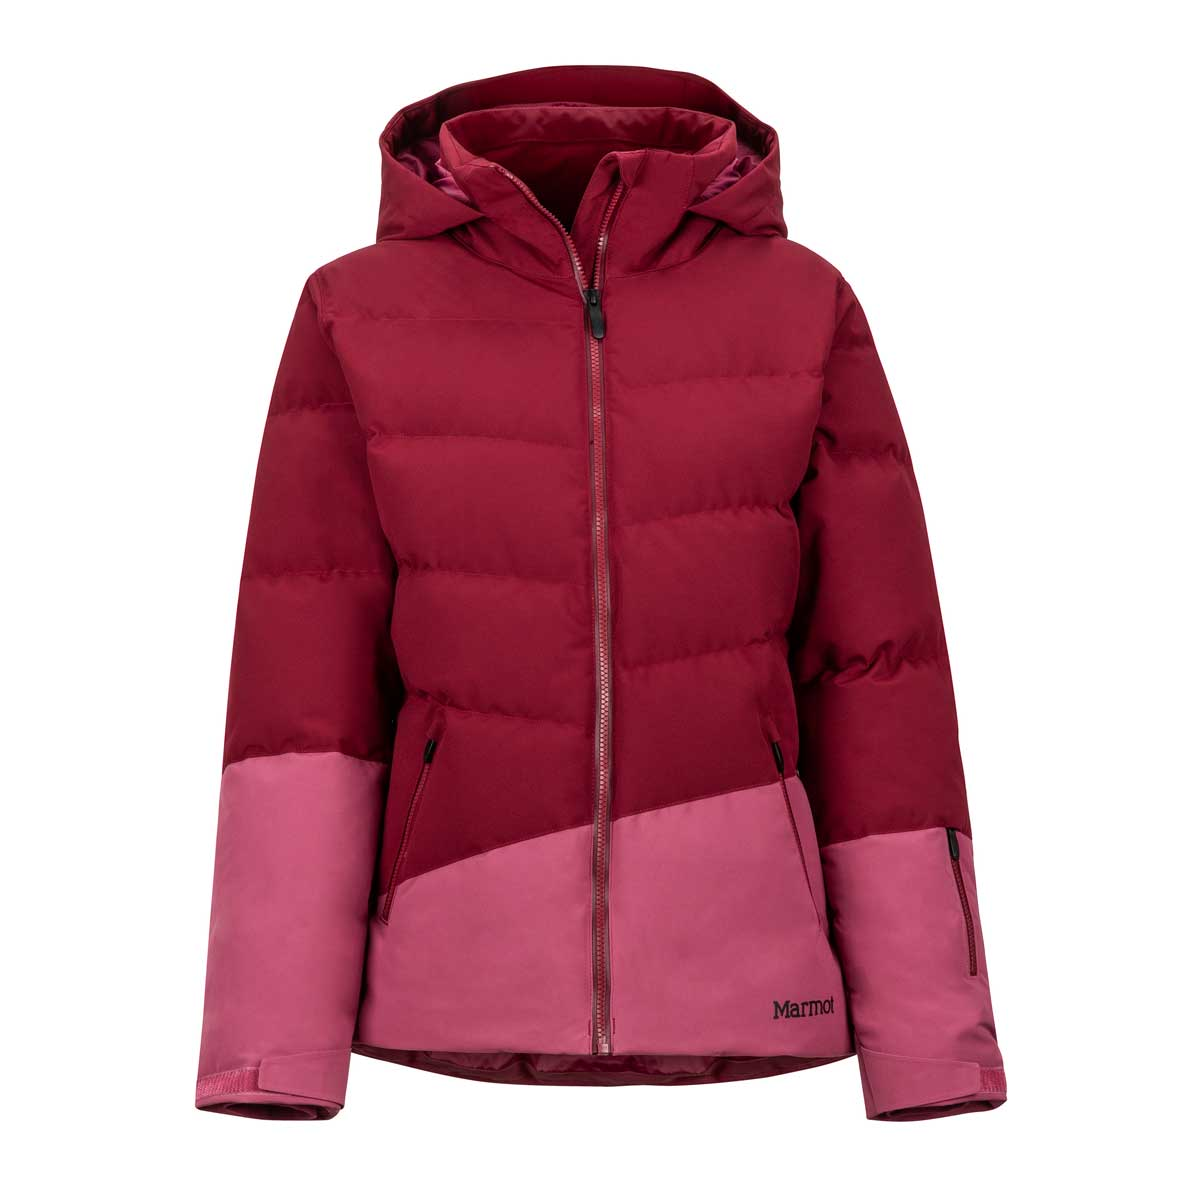 Marmot Women's Slingshot Jacket in Claret and Dry Rose